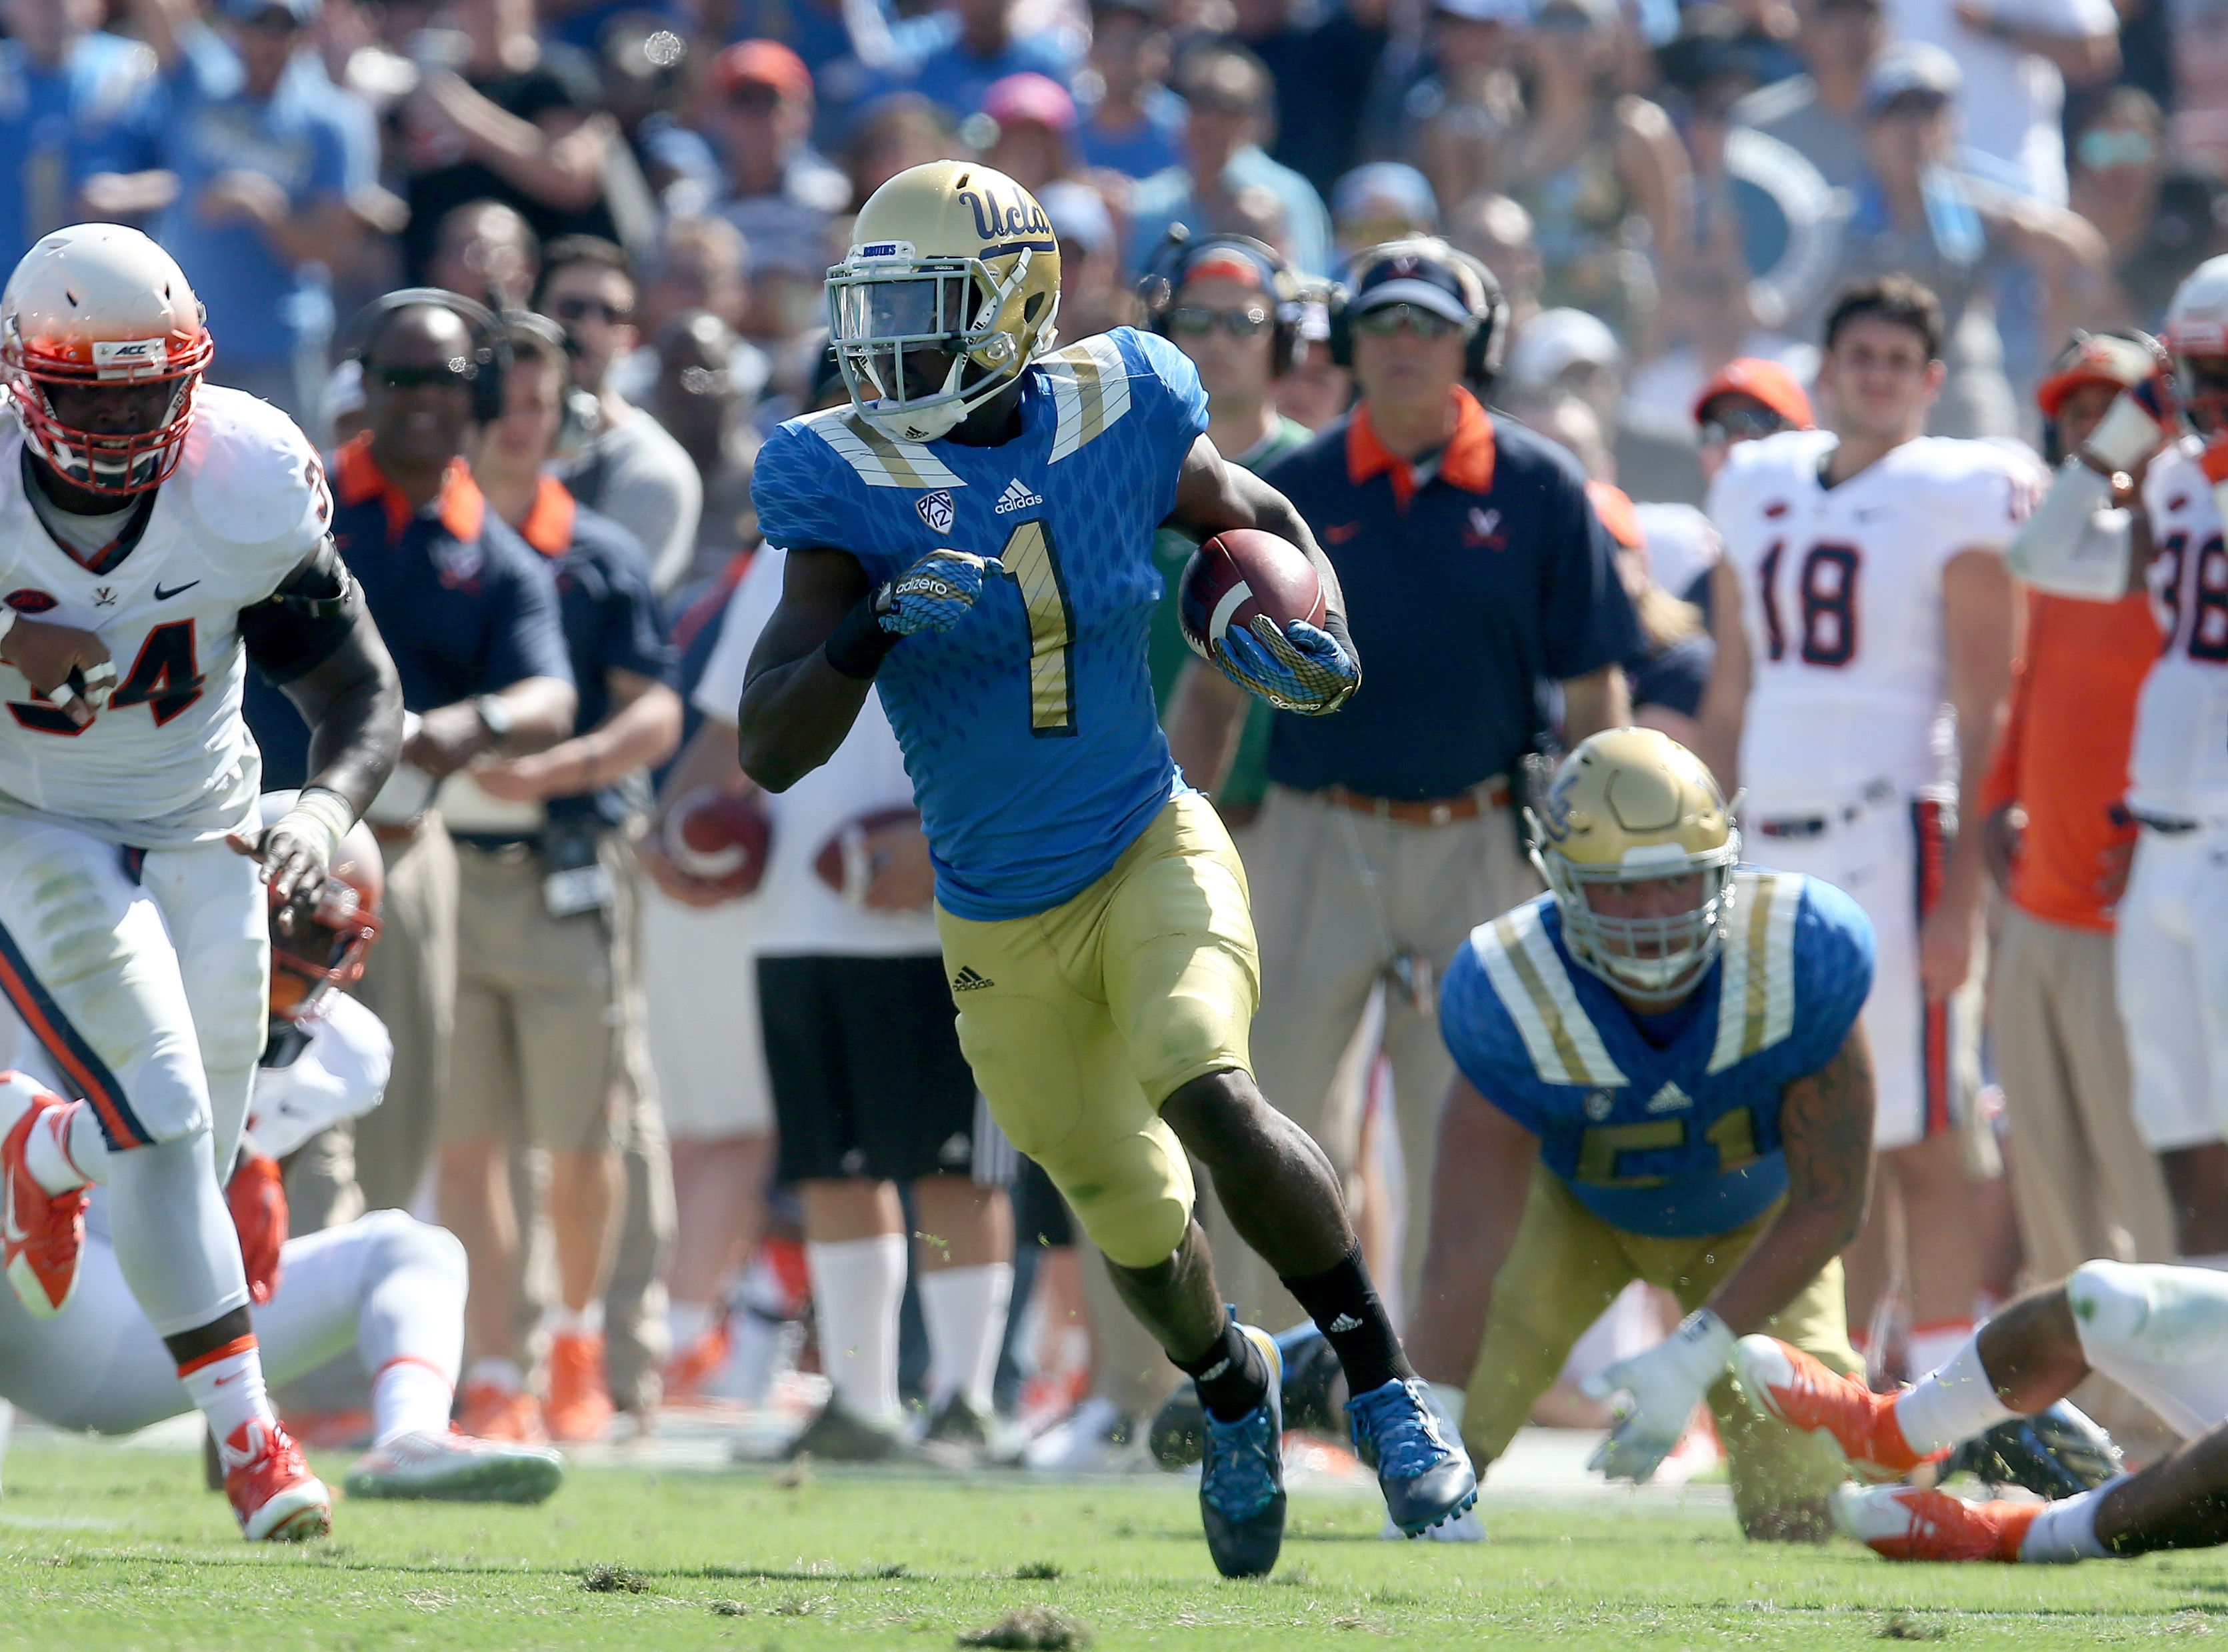 Soso Jamabo runs wild against Virginia last September in his first college football game.